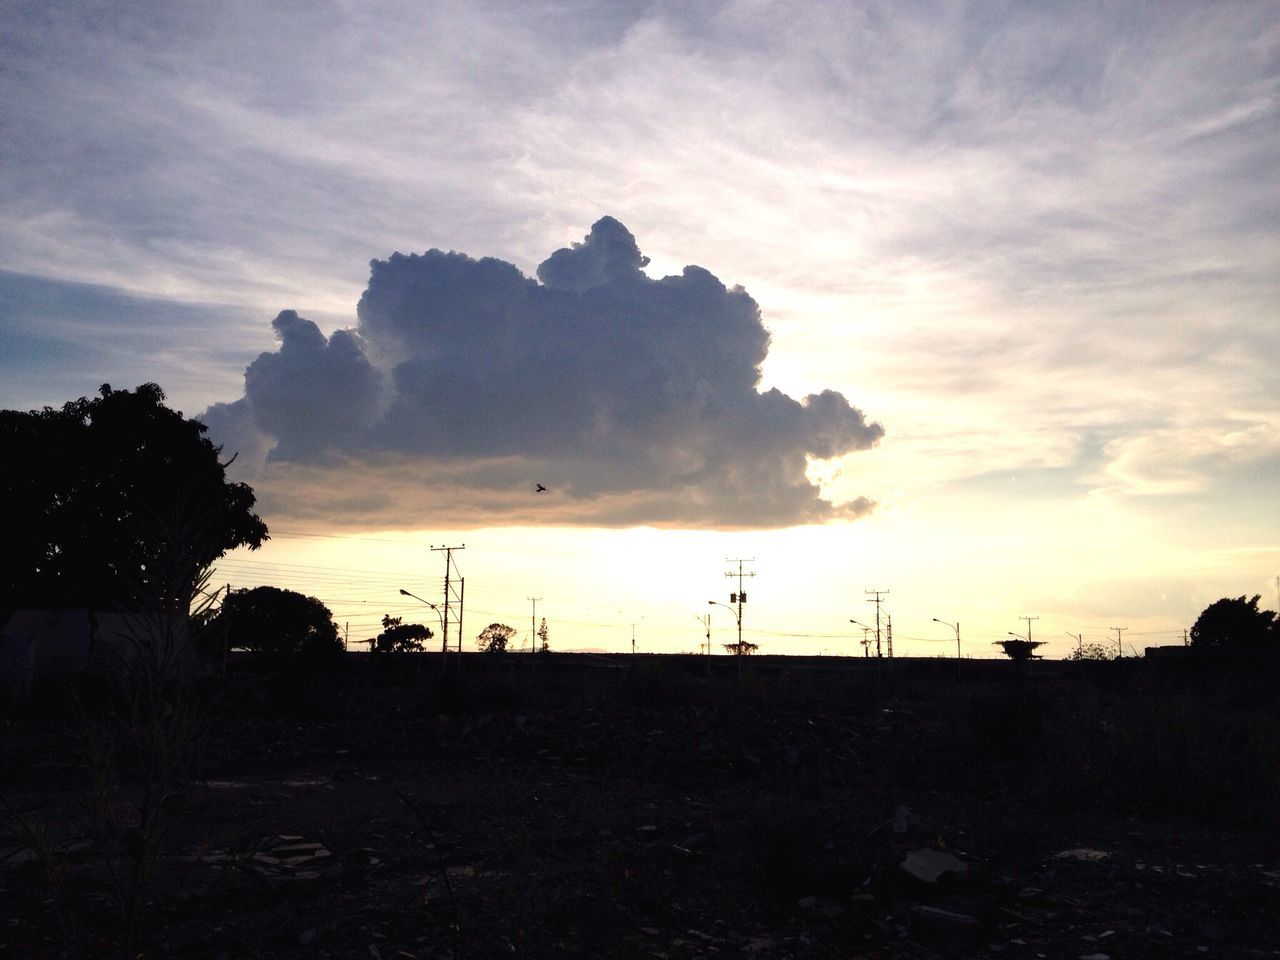 Landscape Against Cloudy Sky During Sunset